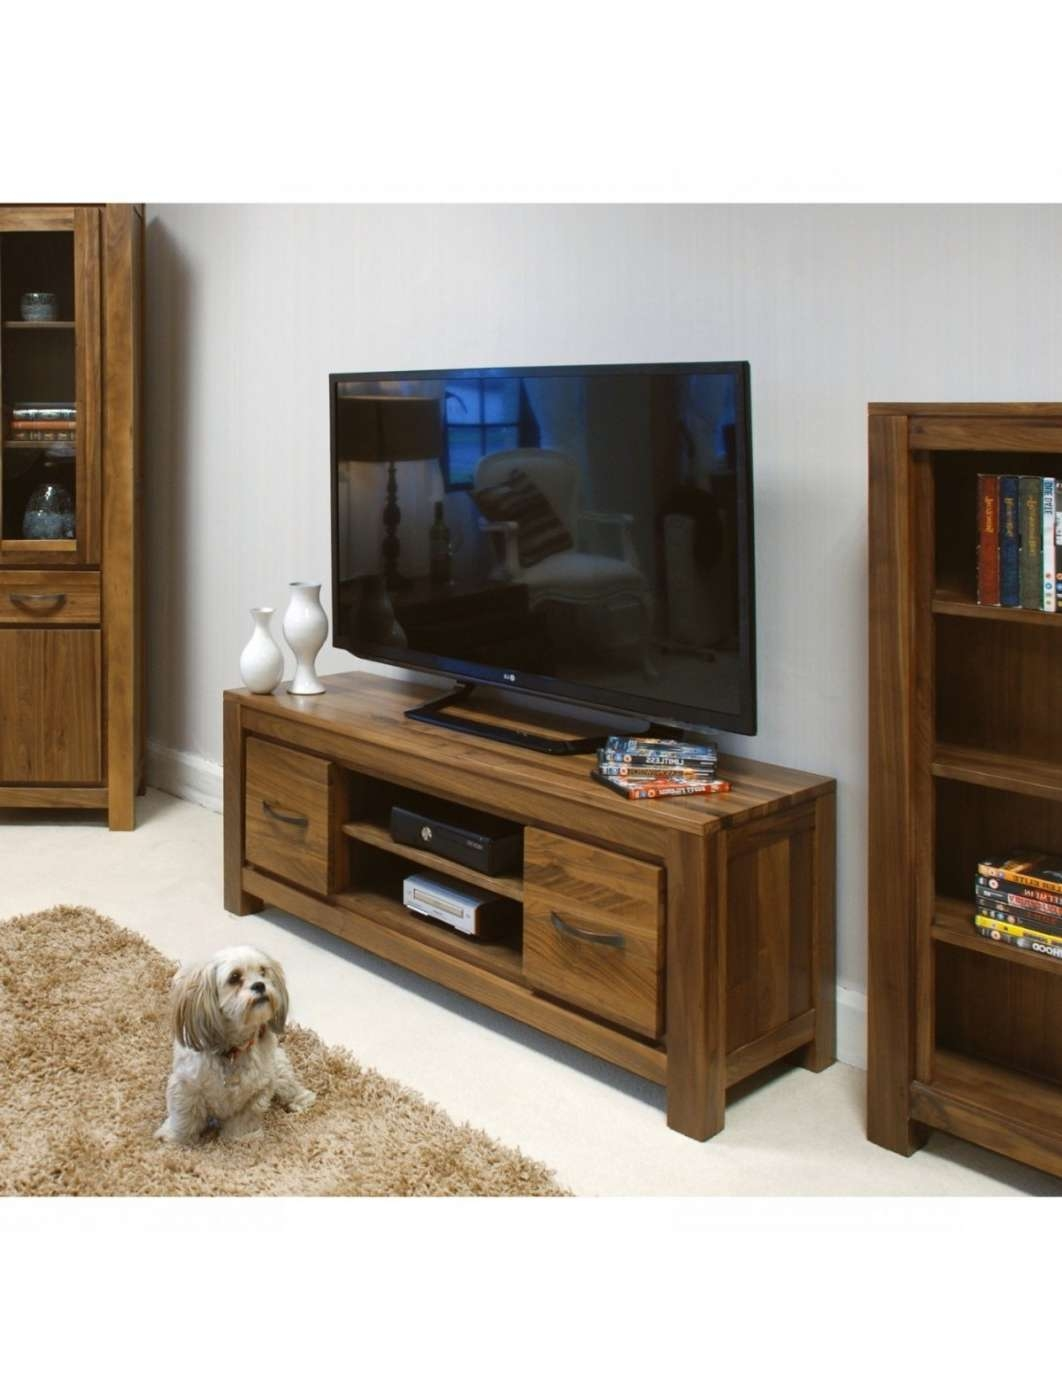 Low Widescreen Tv Stand Baumhaus Mayan Walnut Cwc09A | 121 Tv Mounts Throughout Widescreen Tv Stands (View 6 of 15)